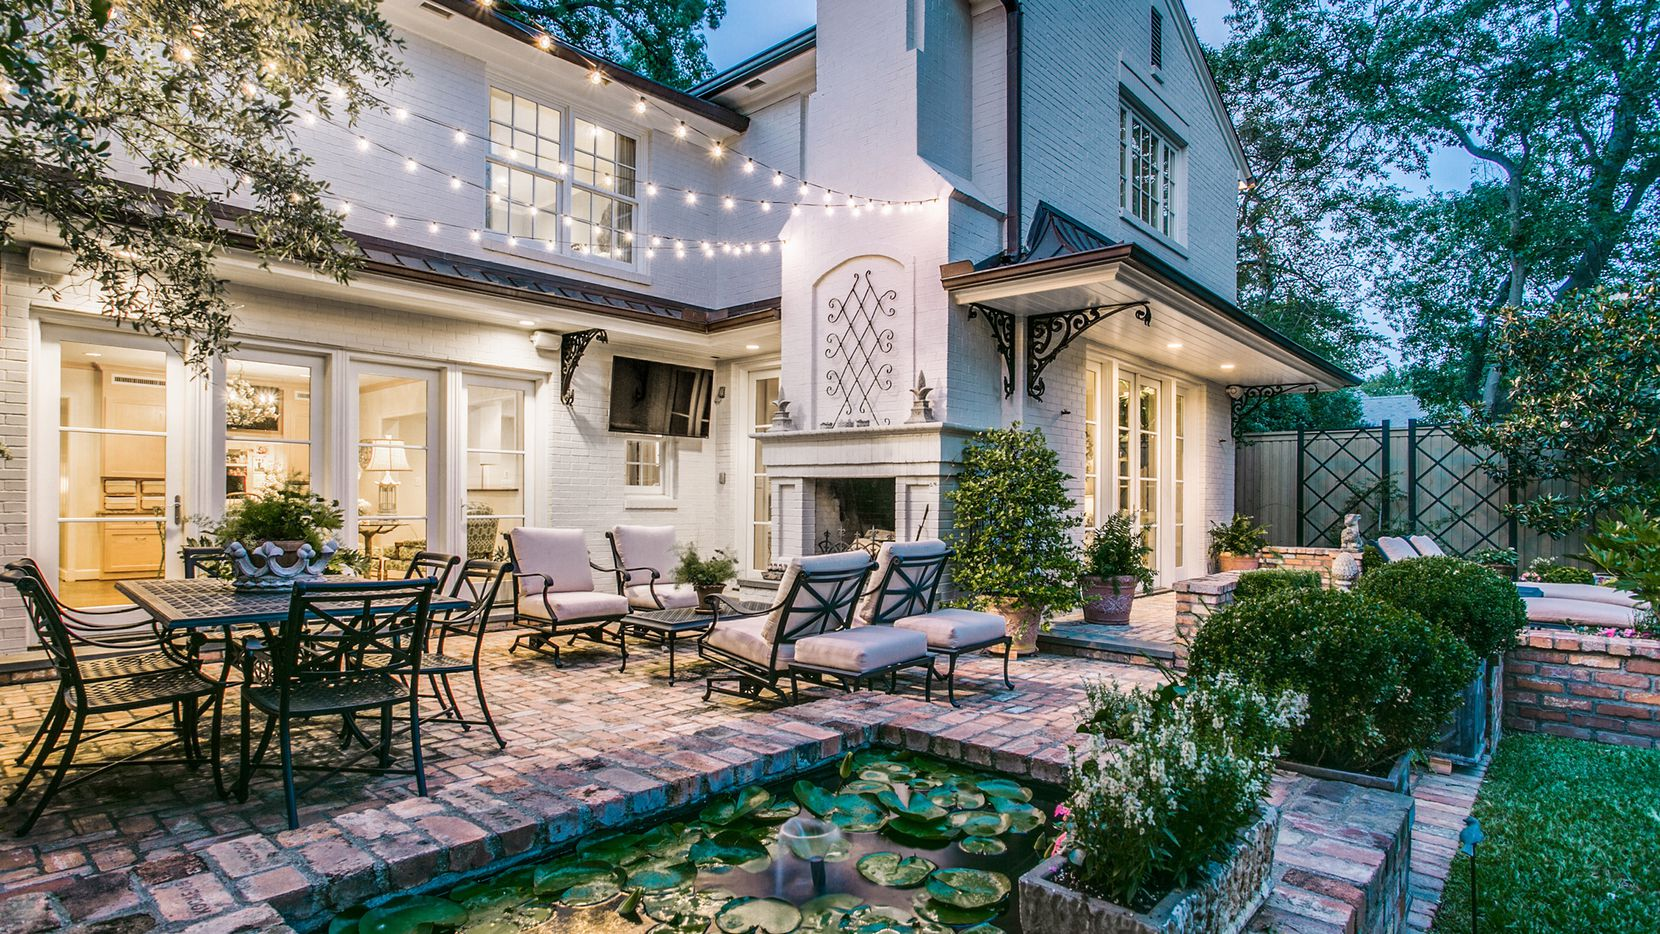 Buyers are looking for outdoor rooms surrounded by greenery and amenities, such as ponds and fire pits.